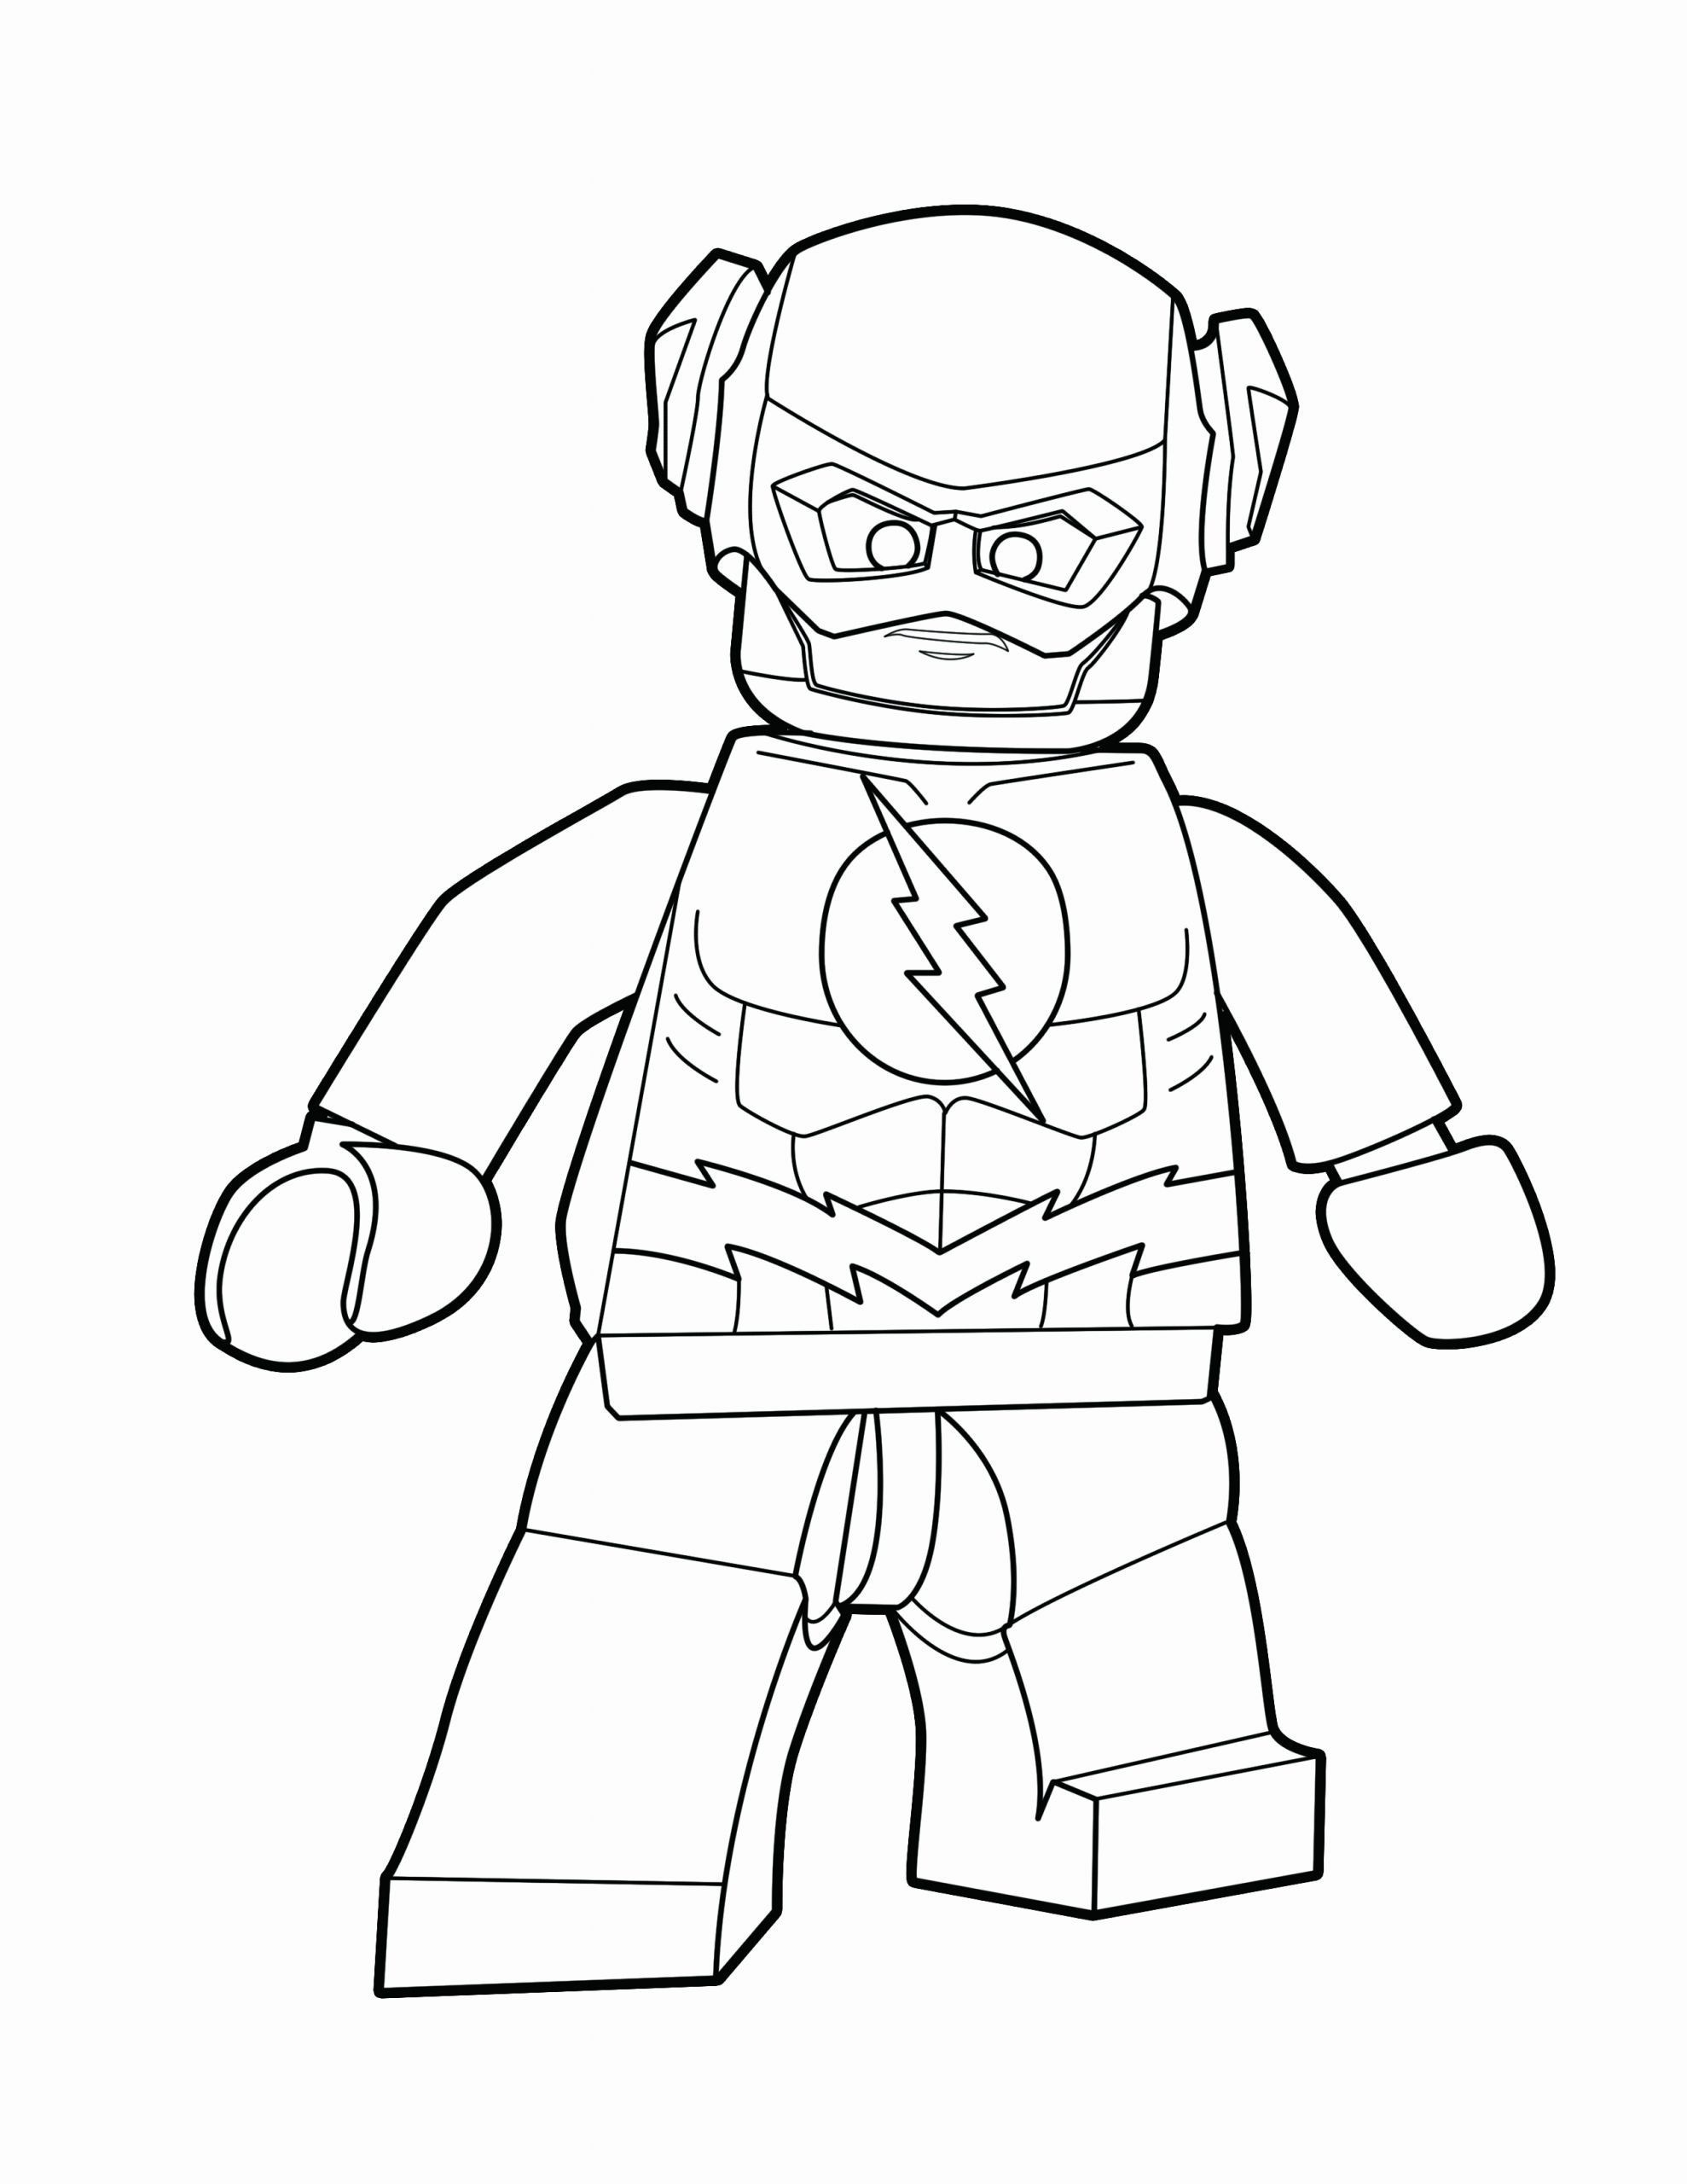 9 Top Flash Coloring Superhero Coloring Pages Lego Coloring Pages Lego Coloring